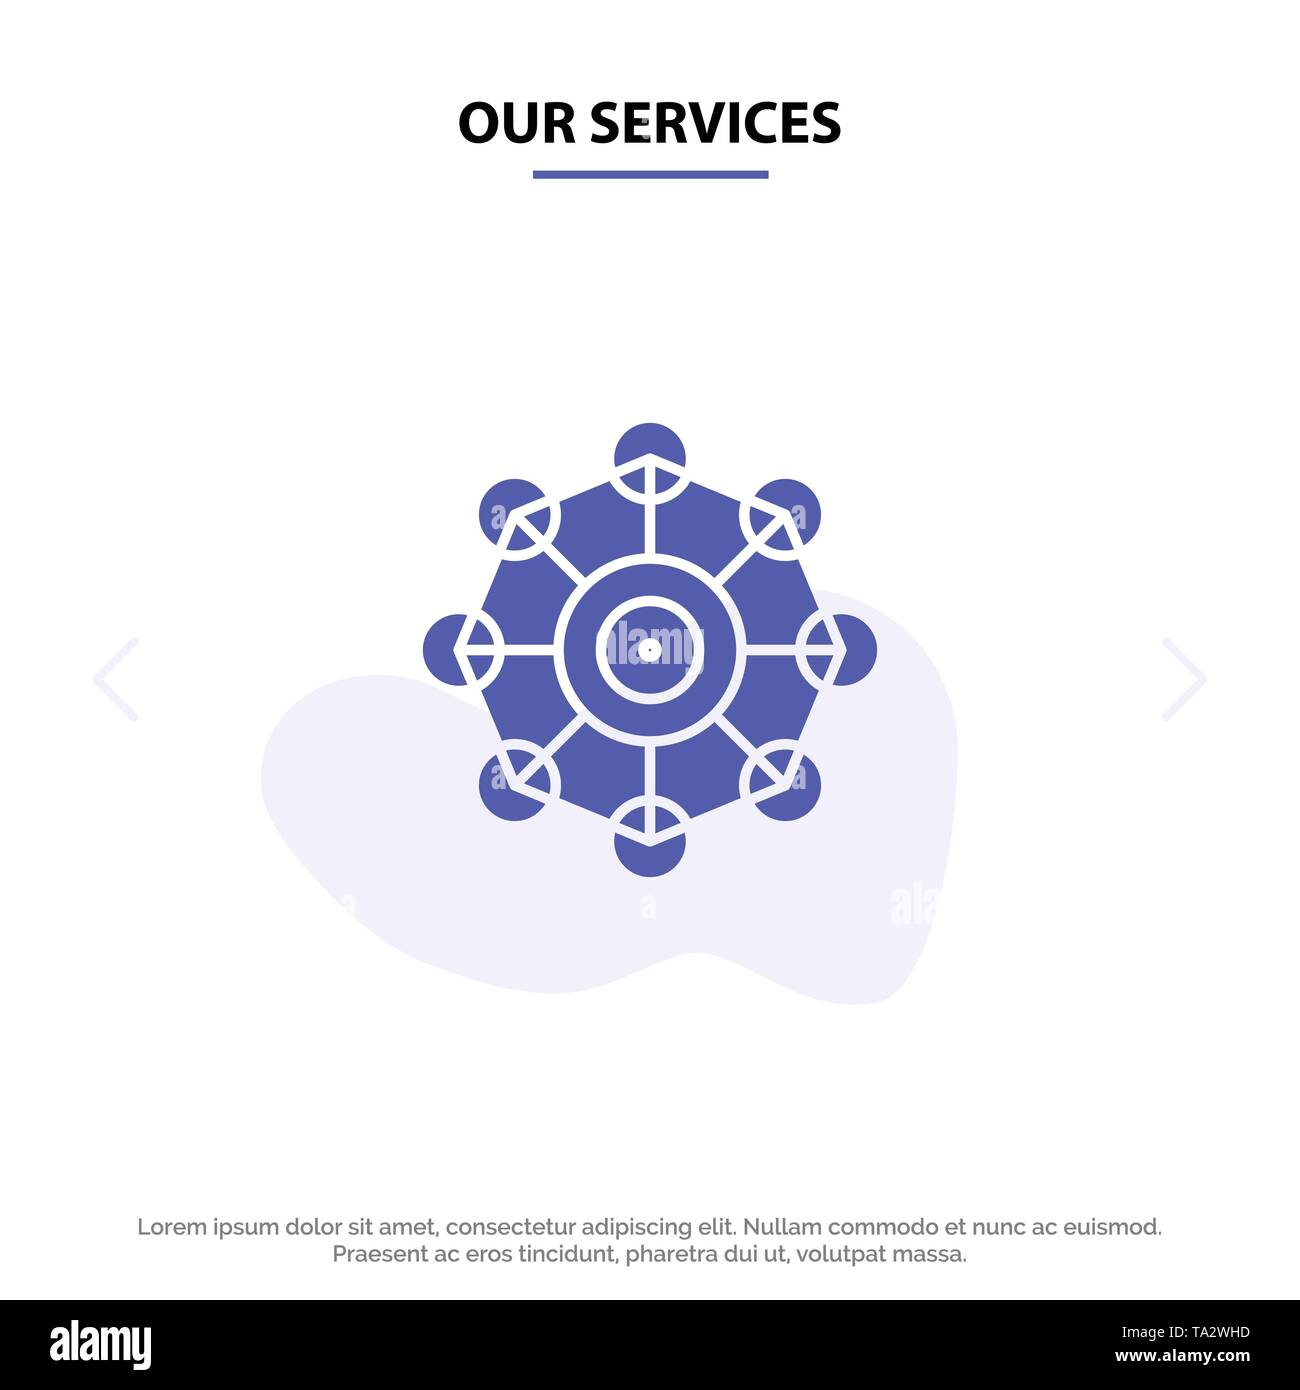 Our Services Learning, Machine, Machine Learning, Science Solid Glyph Icon Web card Template - Stock Image